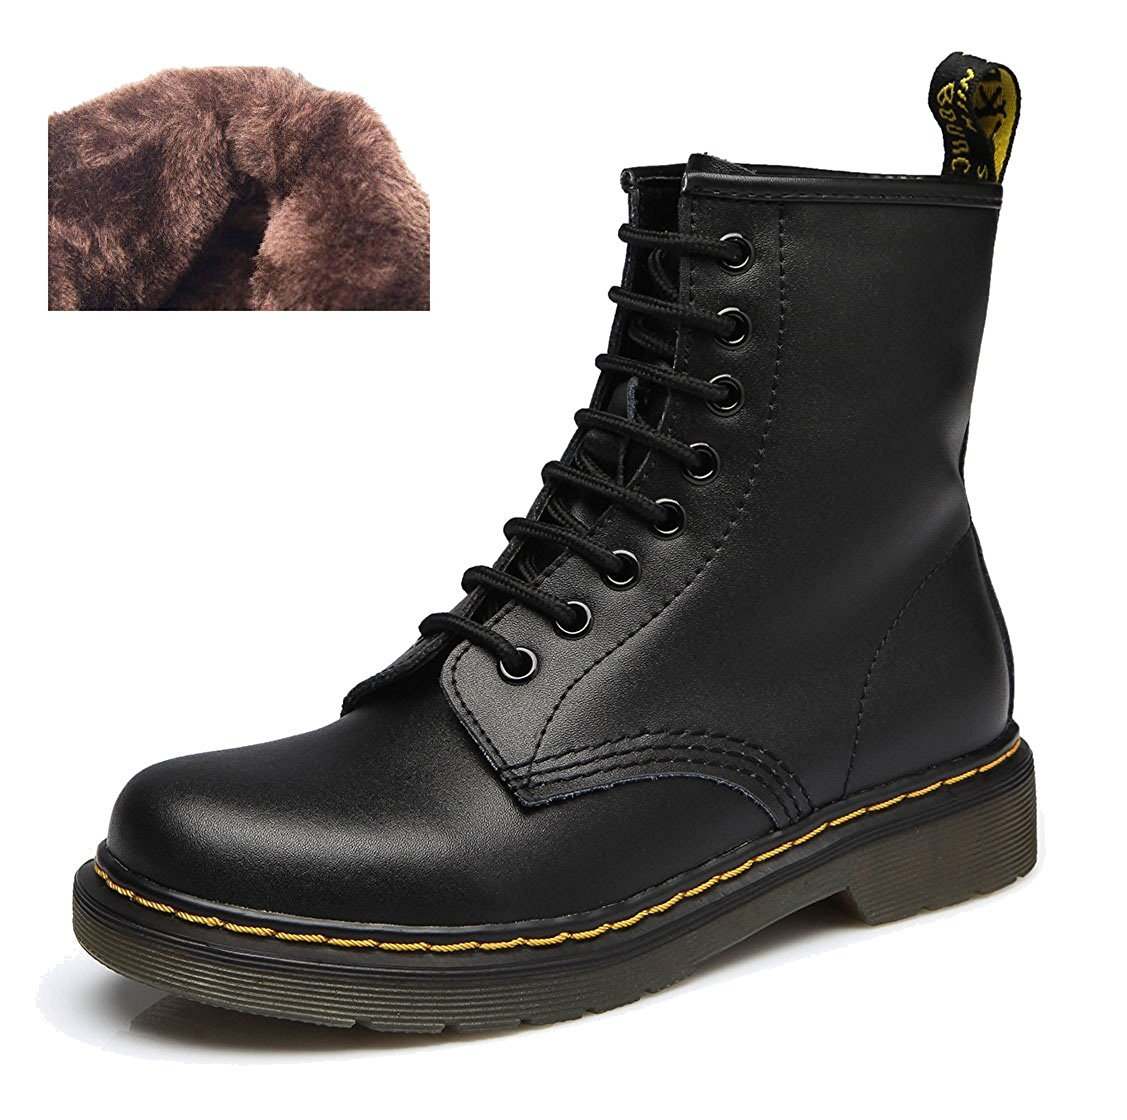 Modemoven Women's Round Toe Lase-up Ankle Boots Ladies Leather Combat B06XNNQ93Q Booties Fashion Martens Boots B06XNNQ93Q Combat 10 B(M) US|Black Fur Lined 9413fc